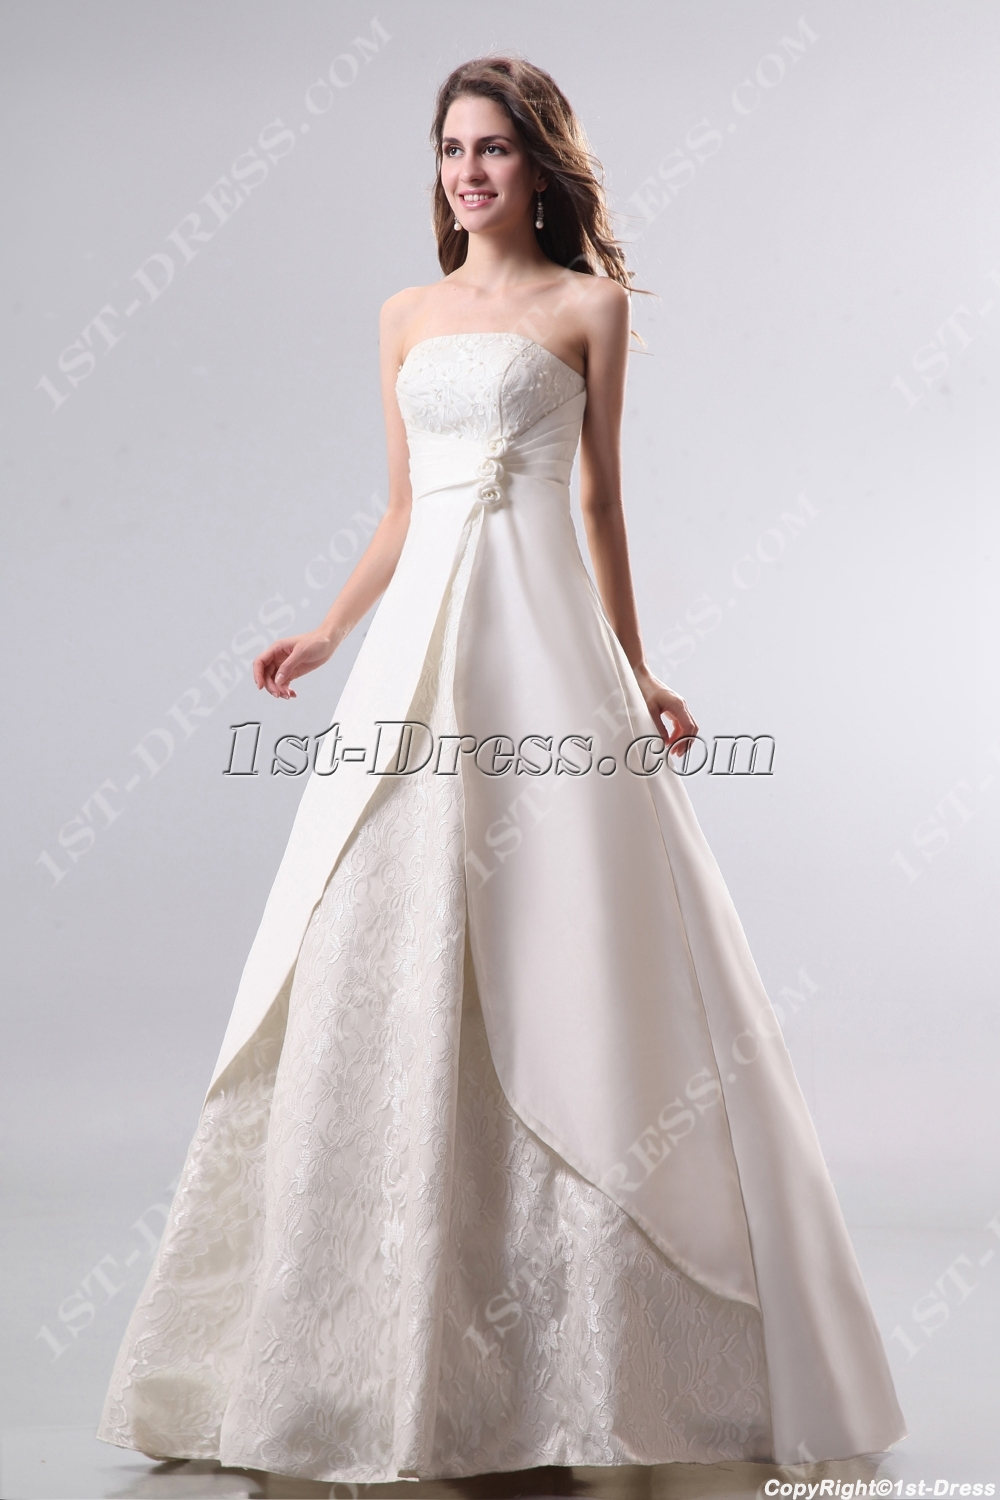 images/201311/big/Ivory-Strapless-Quinceanera-Dresses-Cheap-3497-b-1-1384266579.jpg